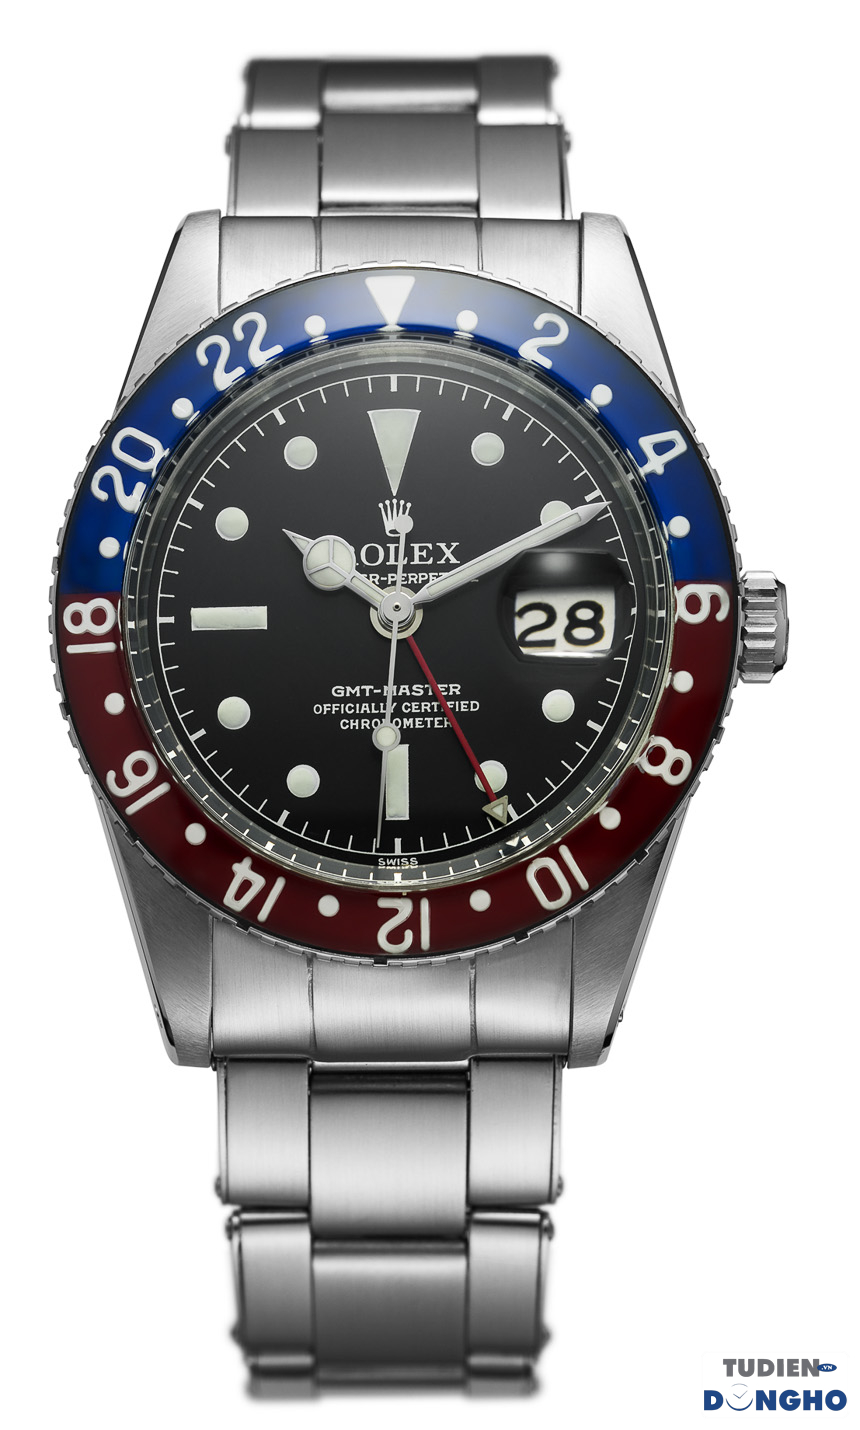 Rolex-Oyster-Professional-Watches-25 udiendongho4